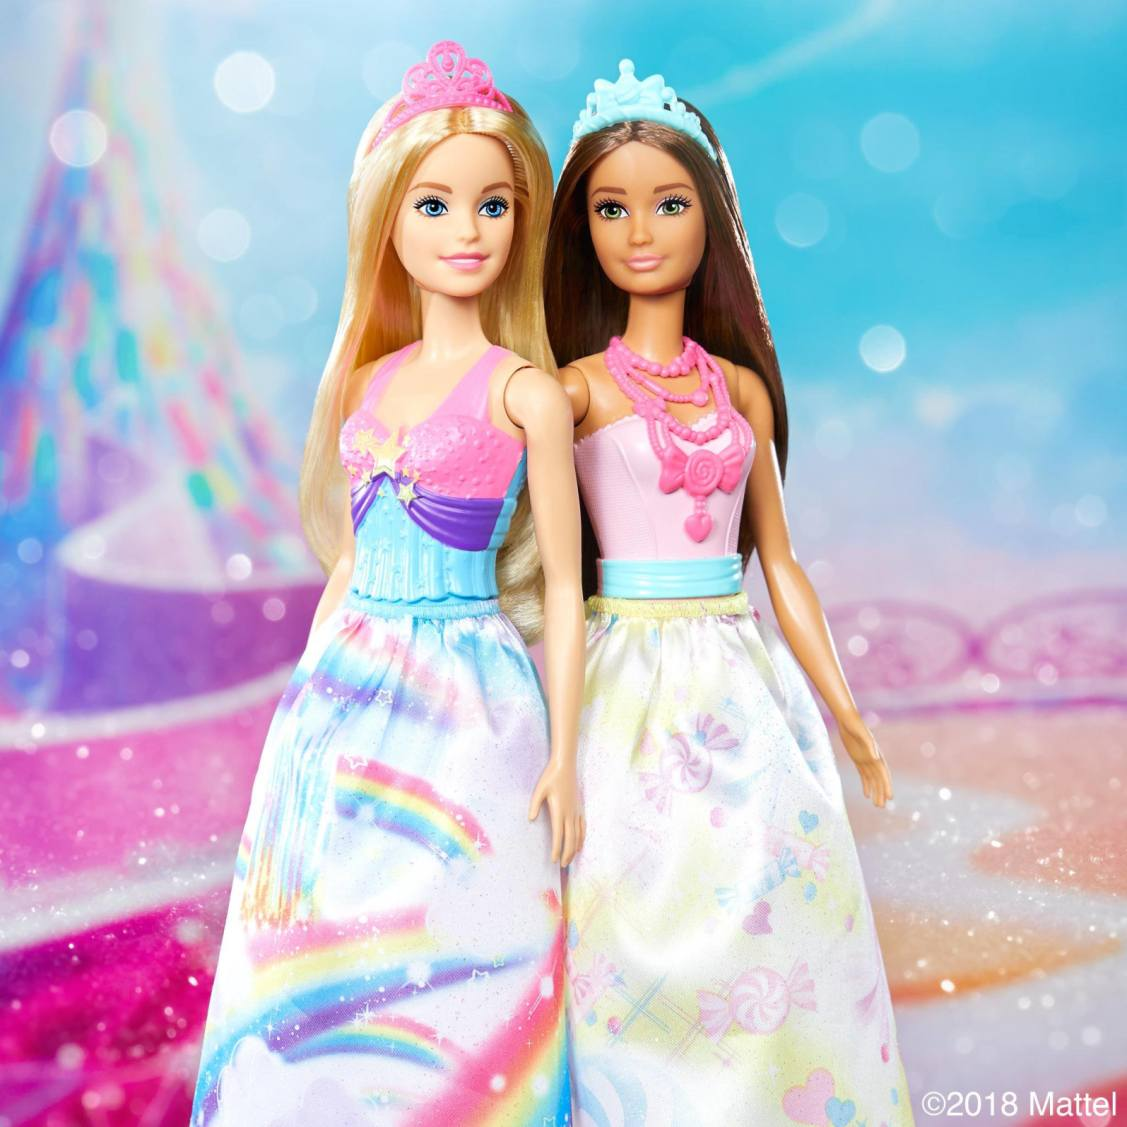 Princesses Barbie - Original image